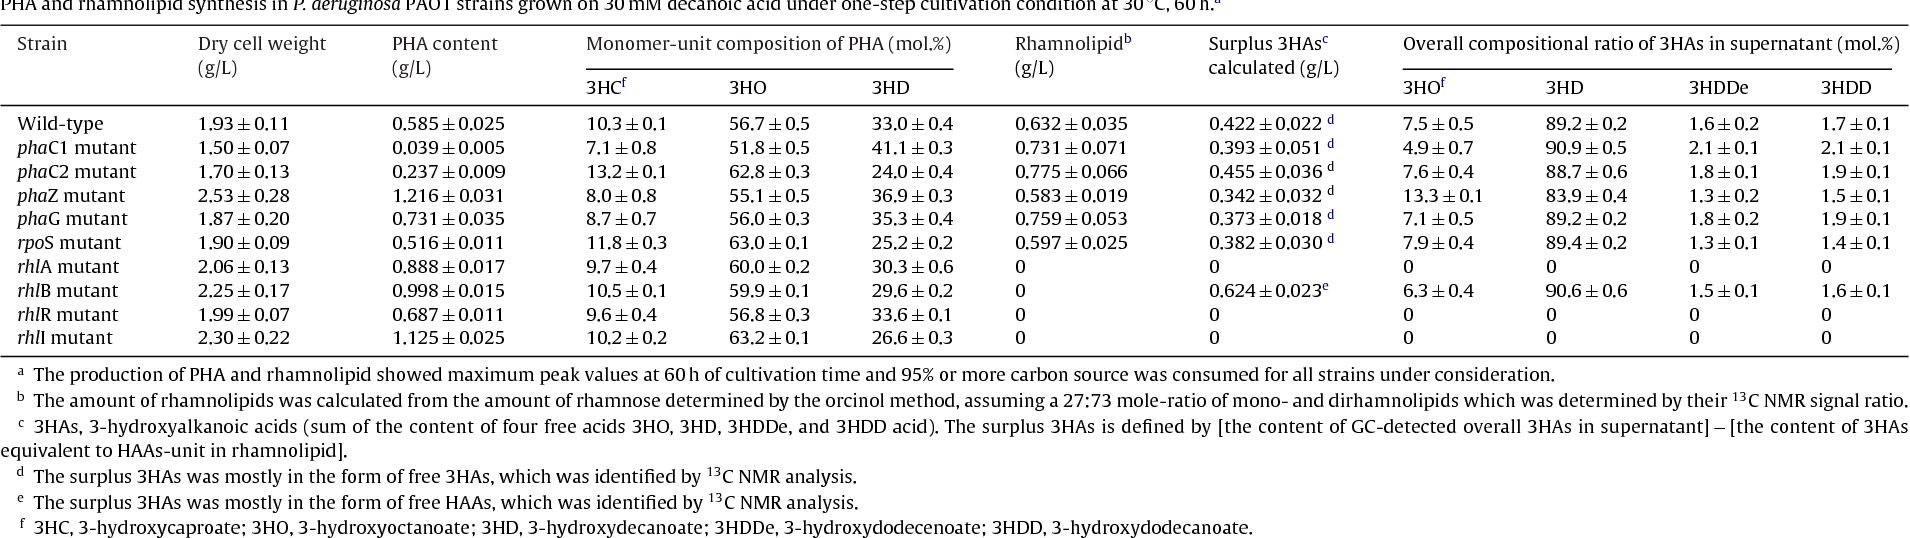 Table 5 PHA and rhamnolipid synthesis in P. aeruginosa PAO1 strains grown on 30mM decanoic acid under one-step cultivation condition at 30 ◦C, 60h.a